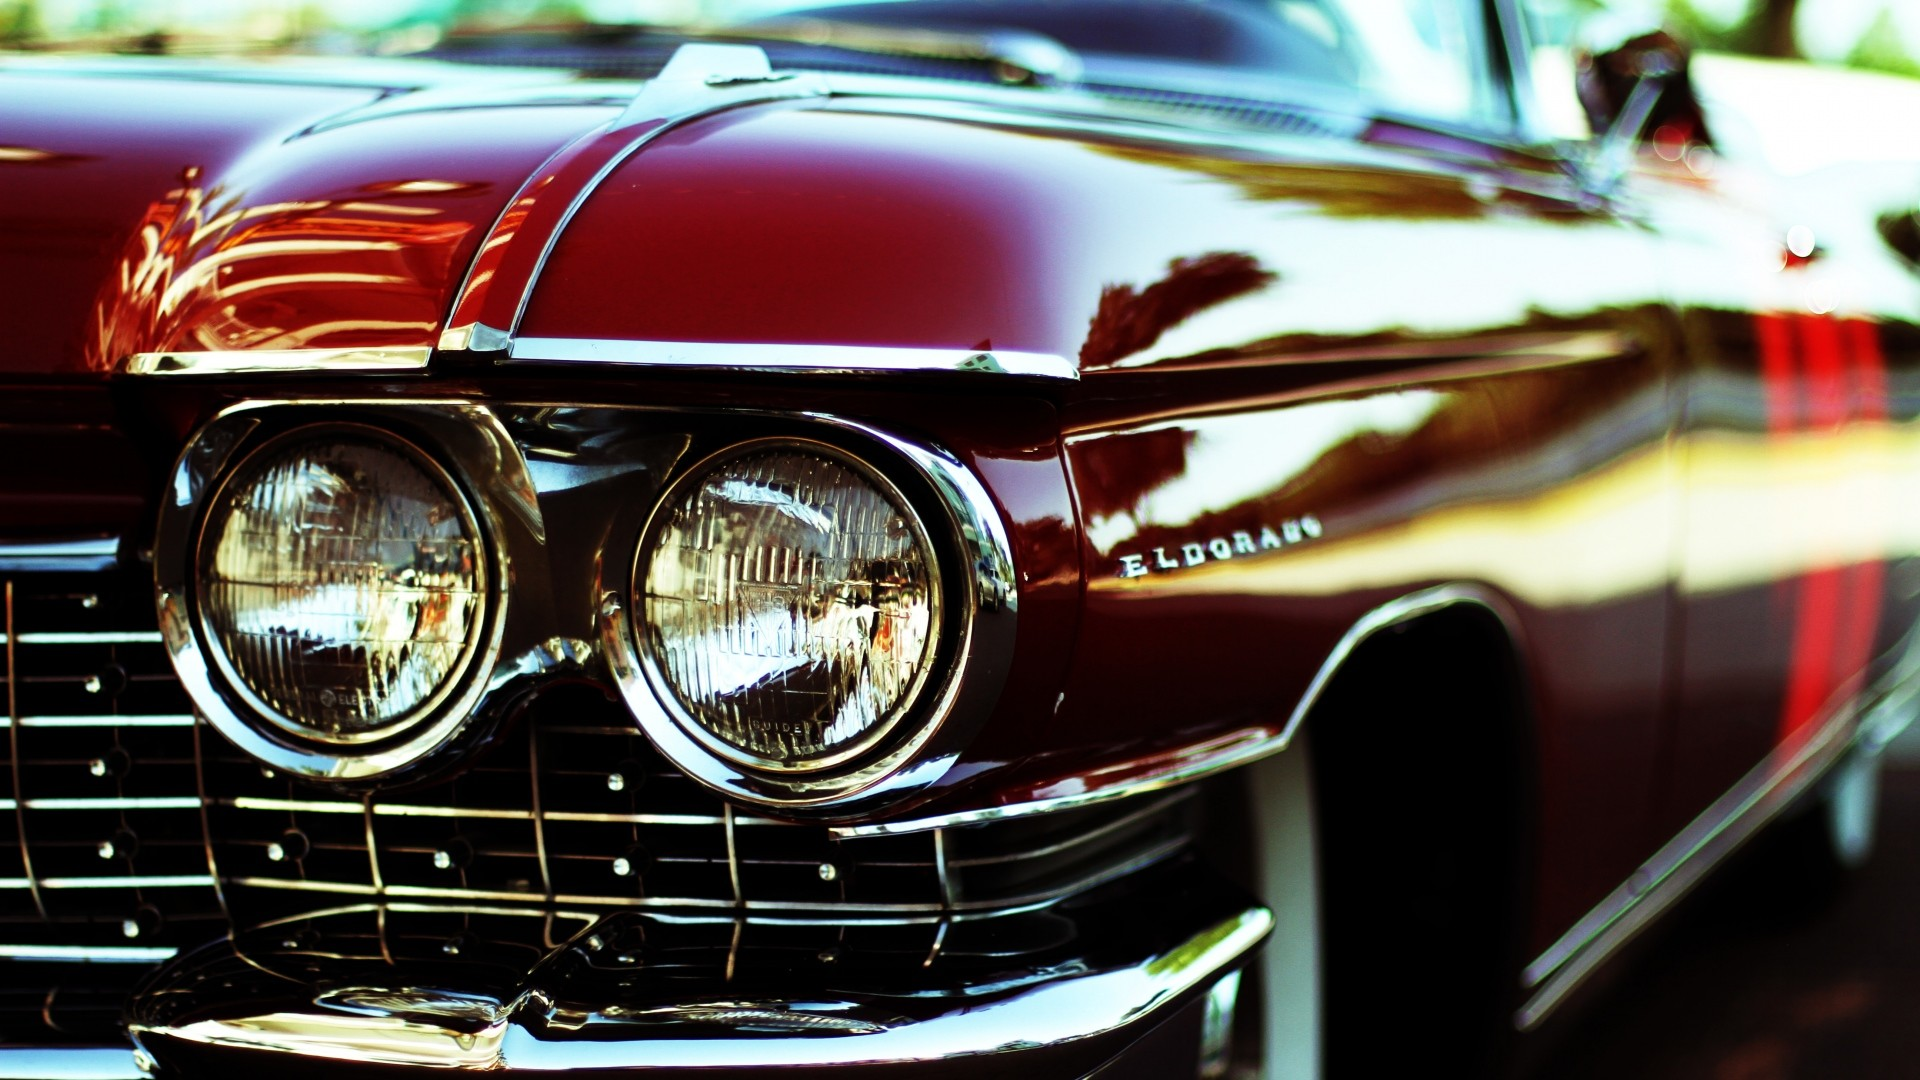 American Muscle Car Mobile Wallpaper Hd Hd Wallpapers Classic Cars 72 Images